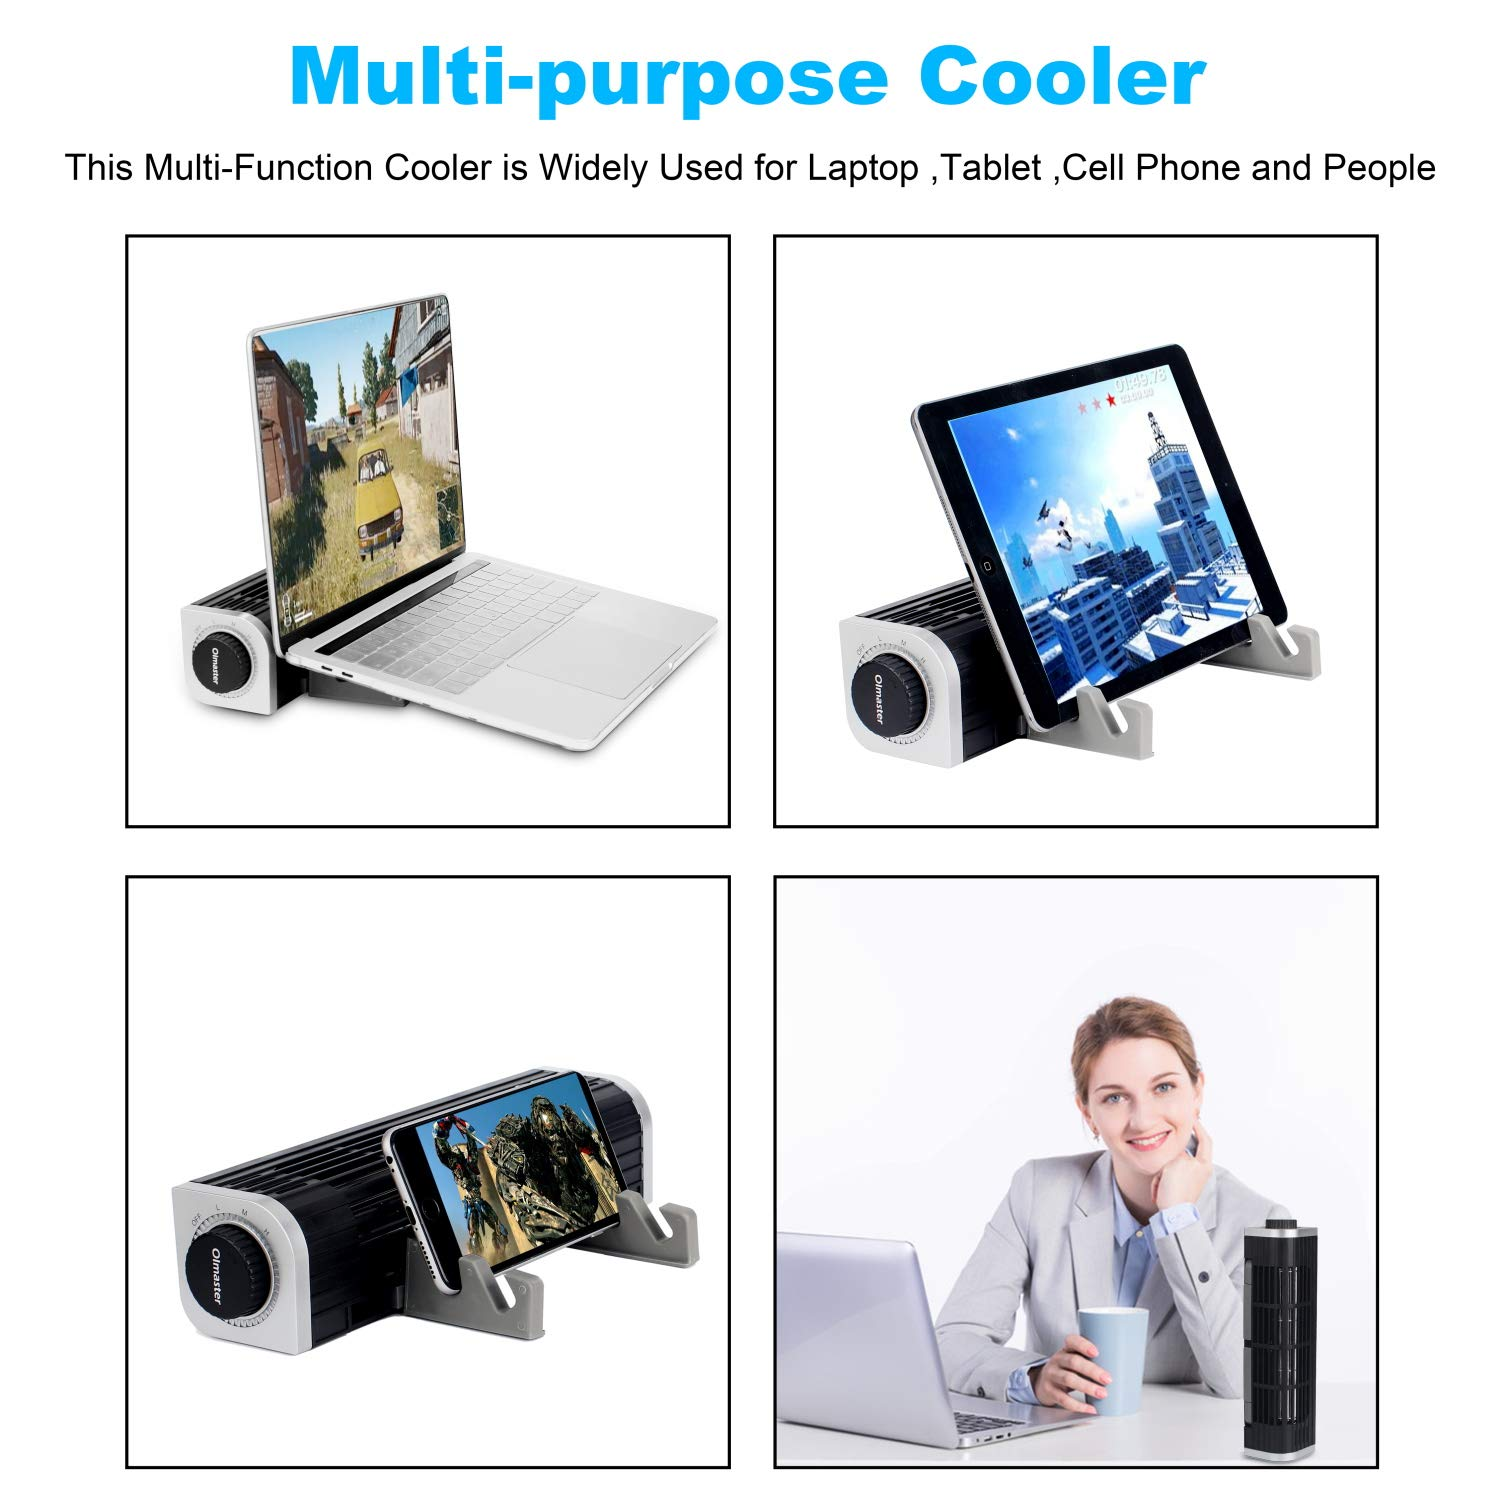 oimaster Laptop Cooler with Adjustable Stand, USB Laptop Cross-Flow Cooling Fan Pad & Phone Cooling Holder by oimaster (Image #4)